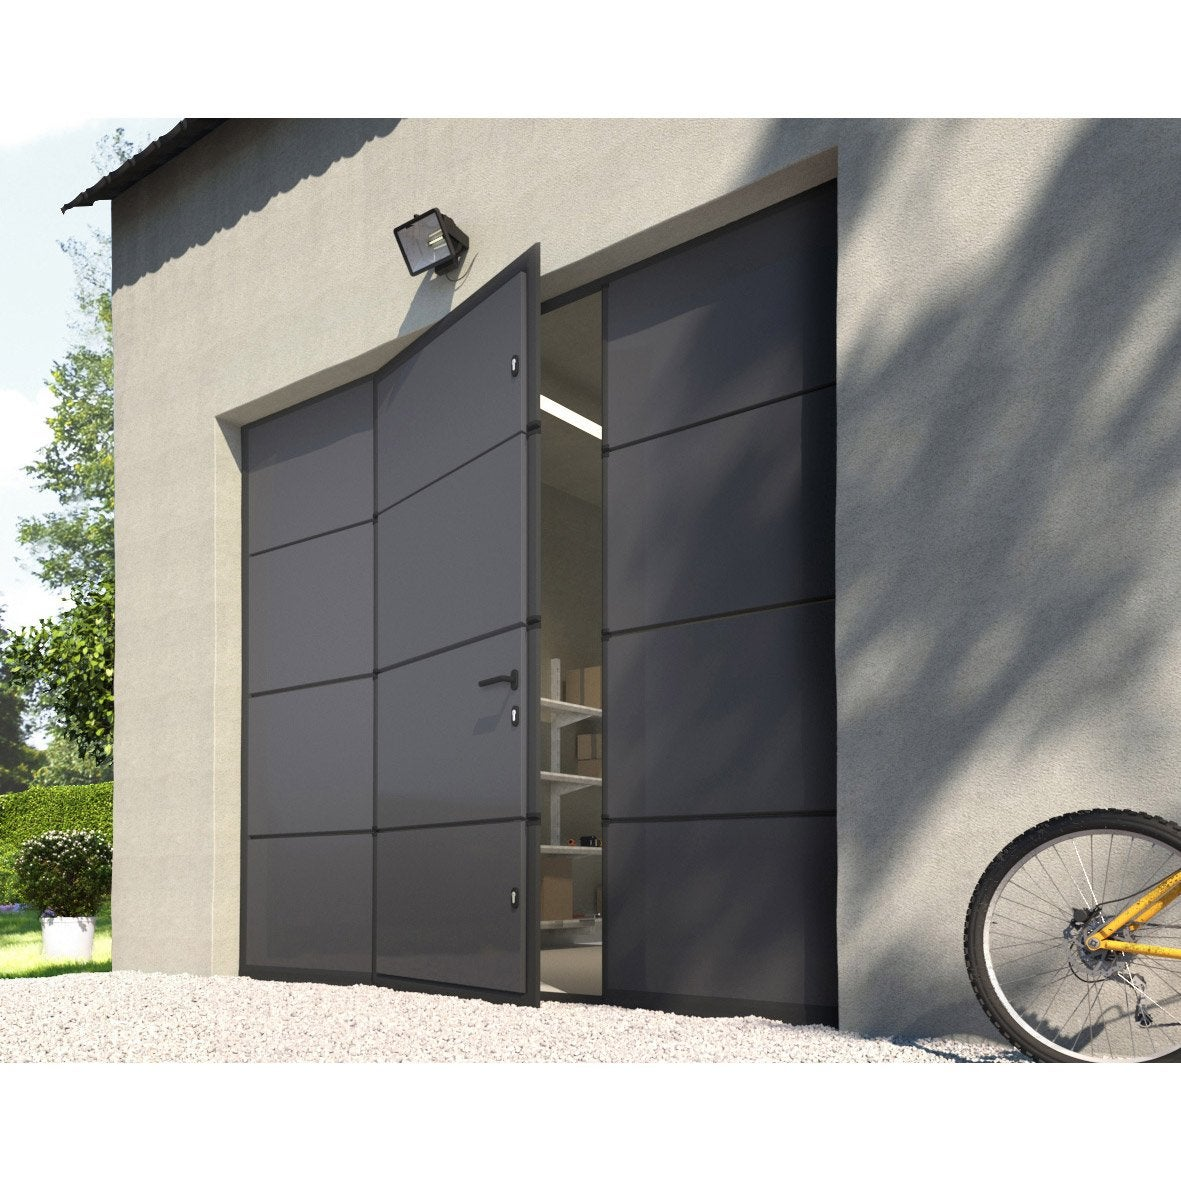 Porte de garage sectionnelle motoris e artens essentiel - Porte de garage avec portillon leroy merlin ...